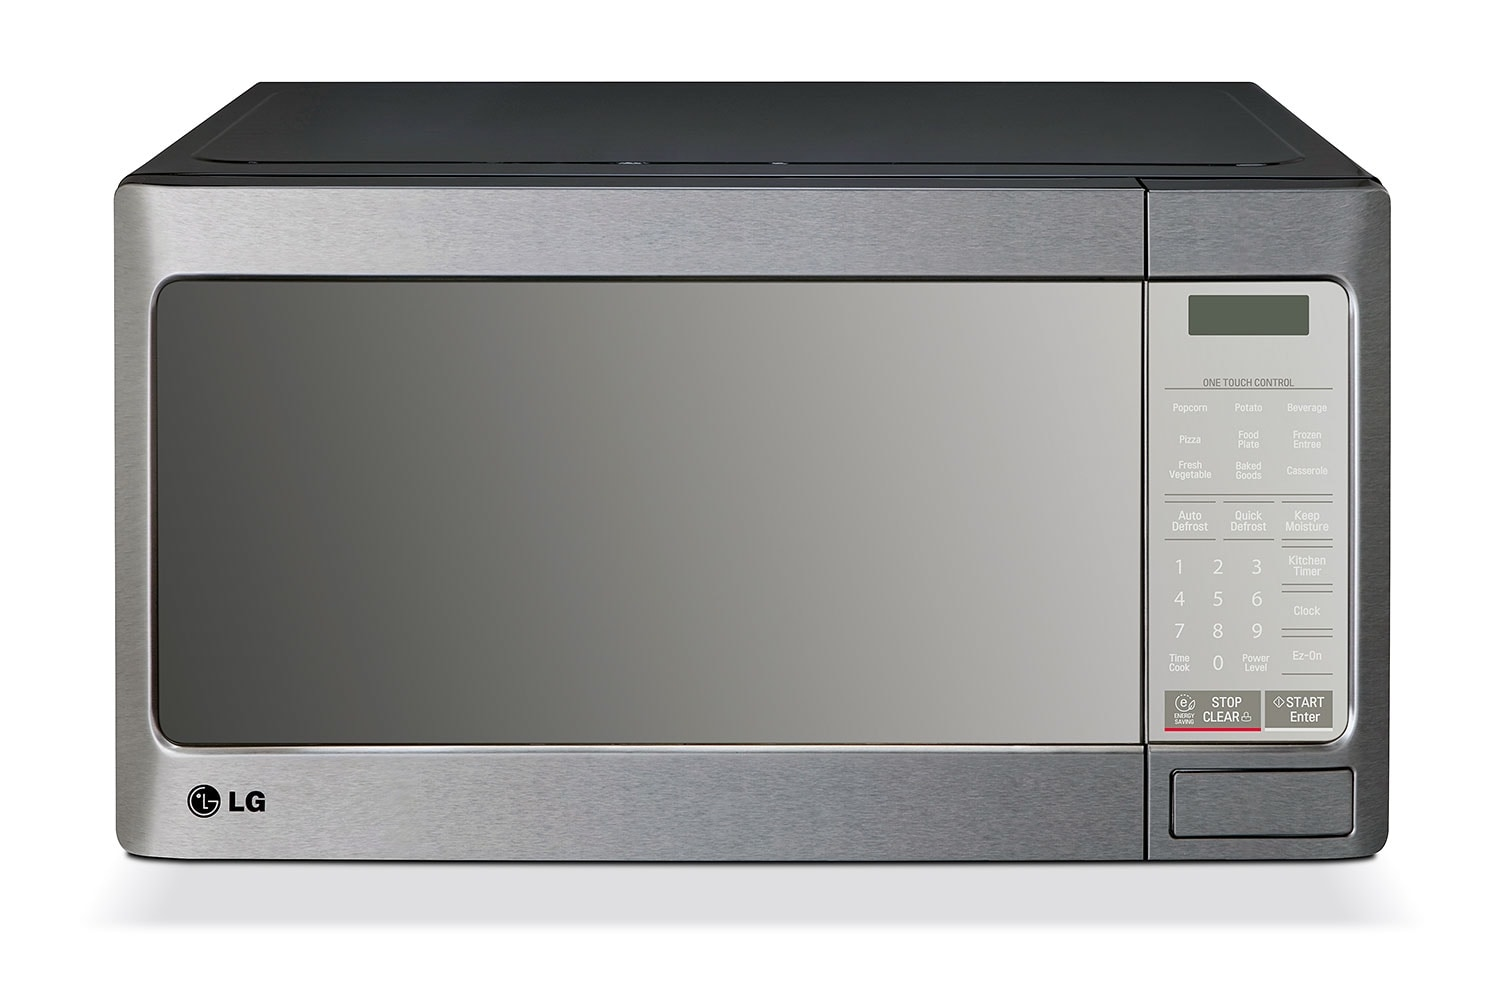 LG Appliances Stainless Steel Microwave (1.1 Cu. Ft.) - LMC1195ST